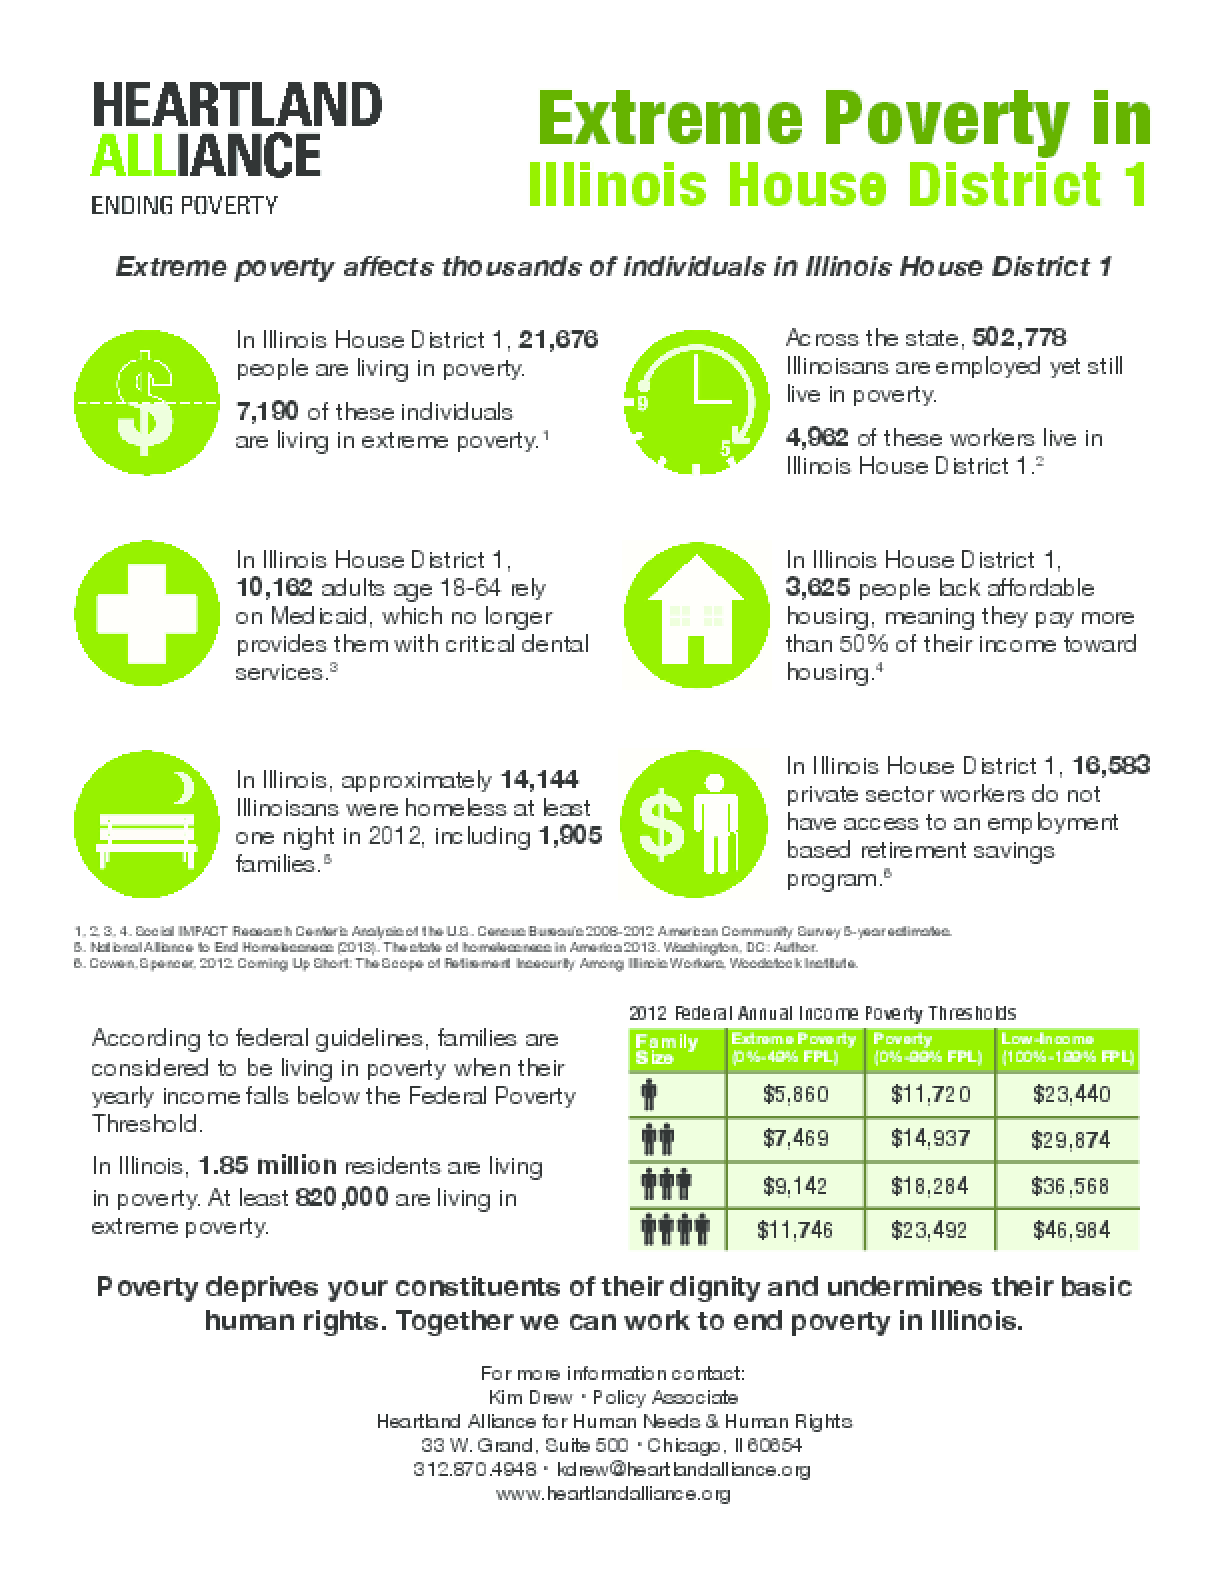 Poverty Fact Sheets for Illinois House Districts